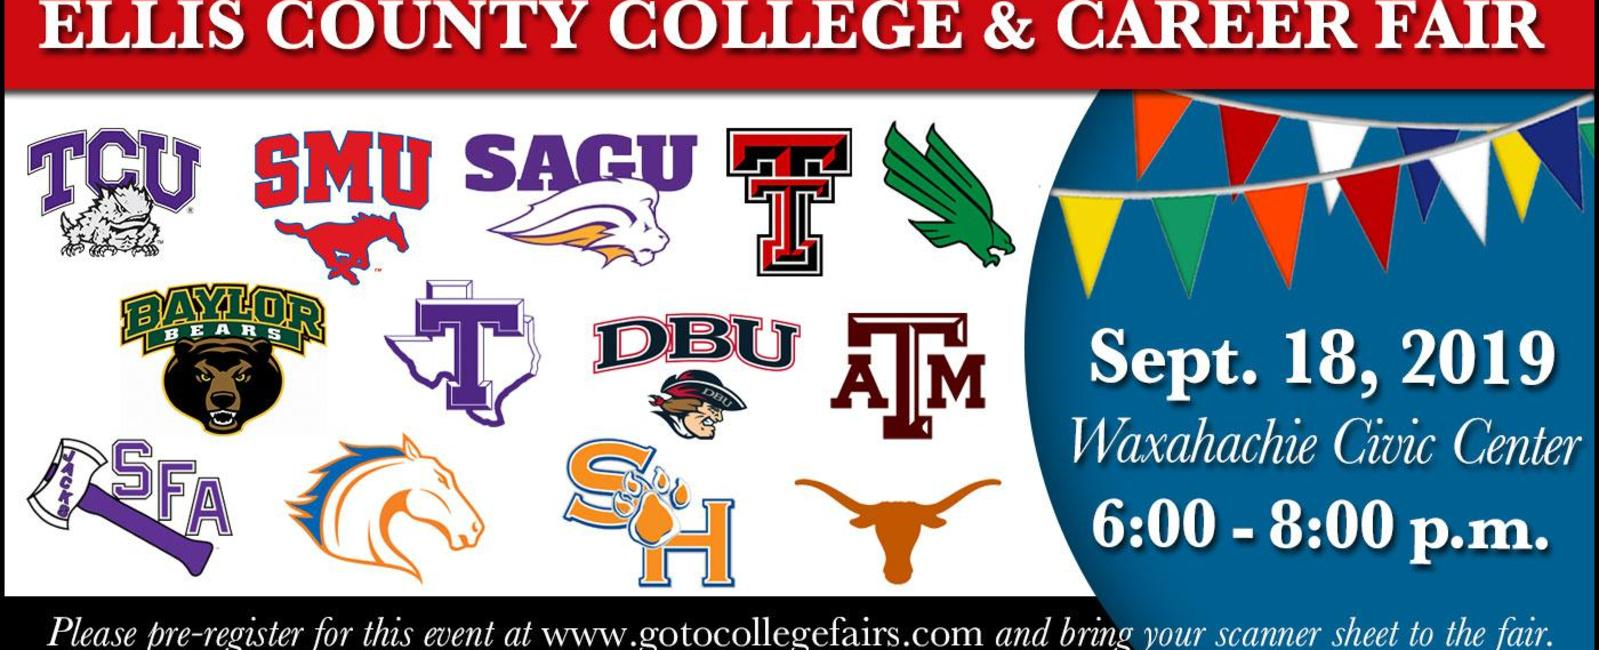 Ellis County College & Career Fair